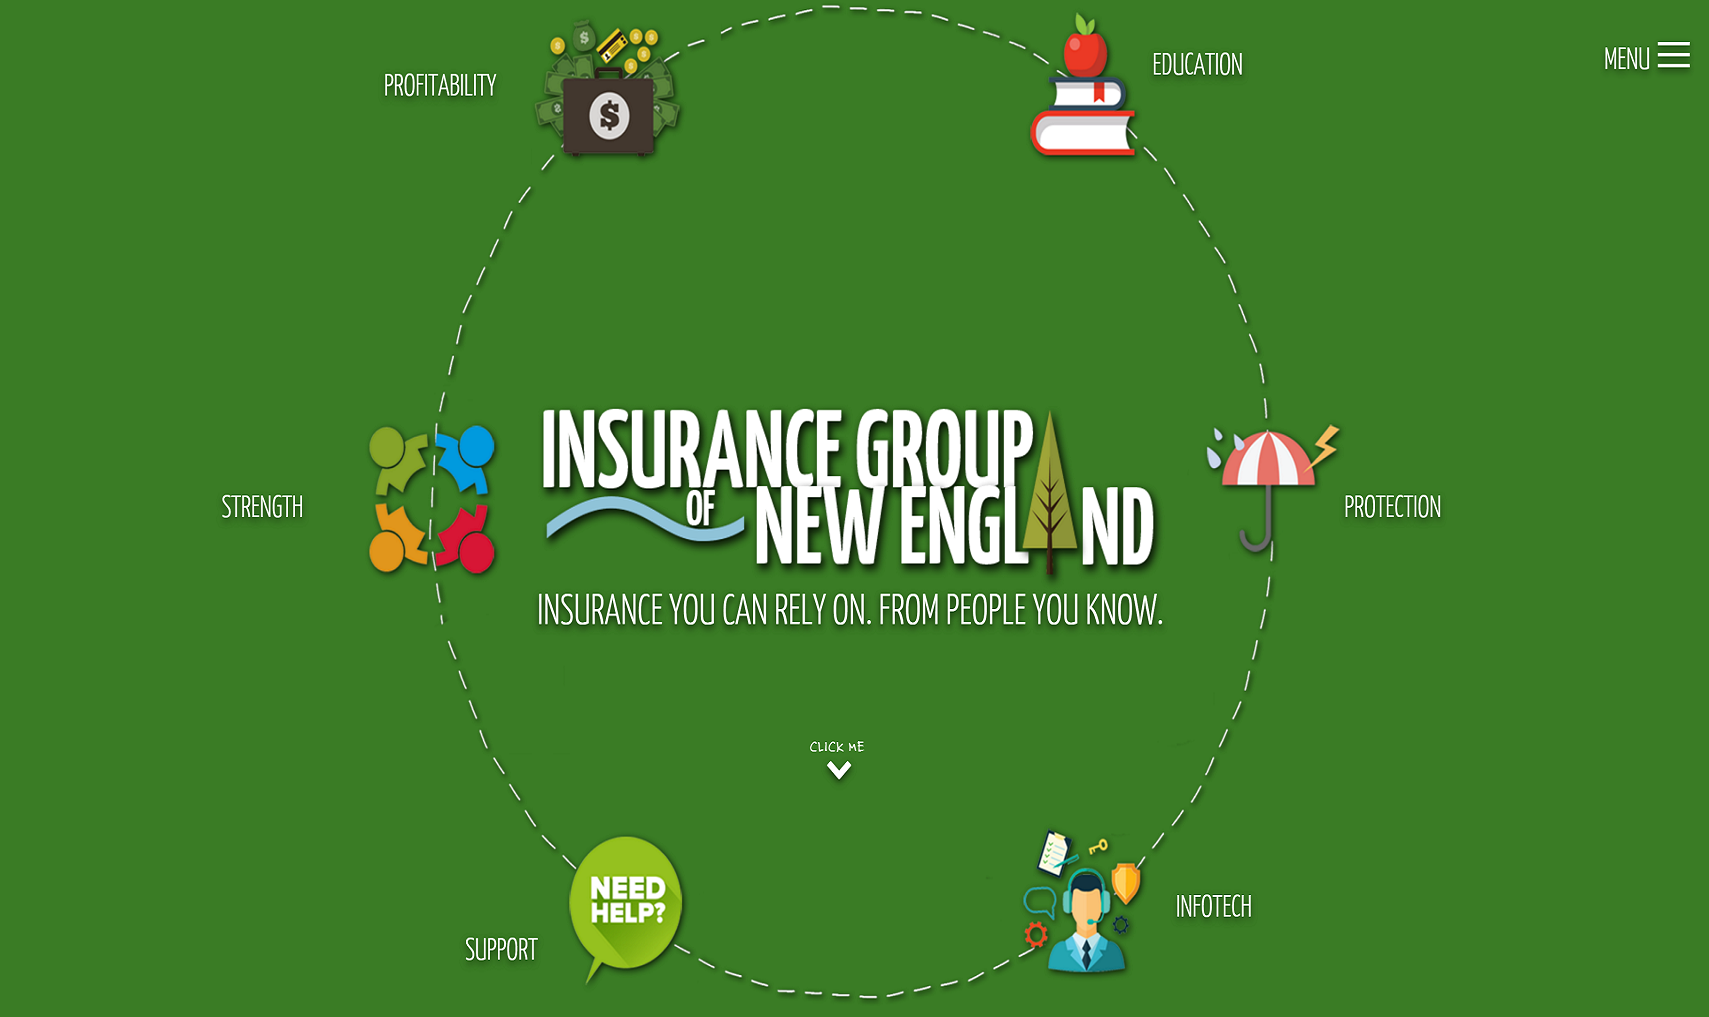 website design, branding and SEO for independent insurance group